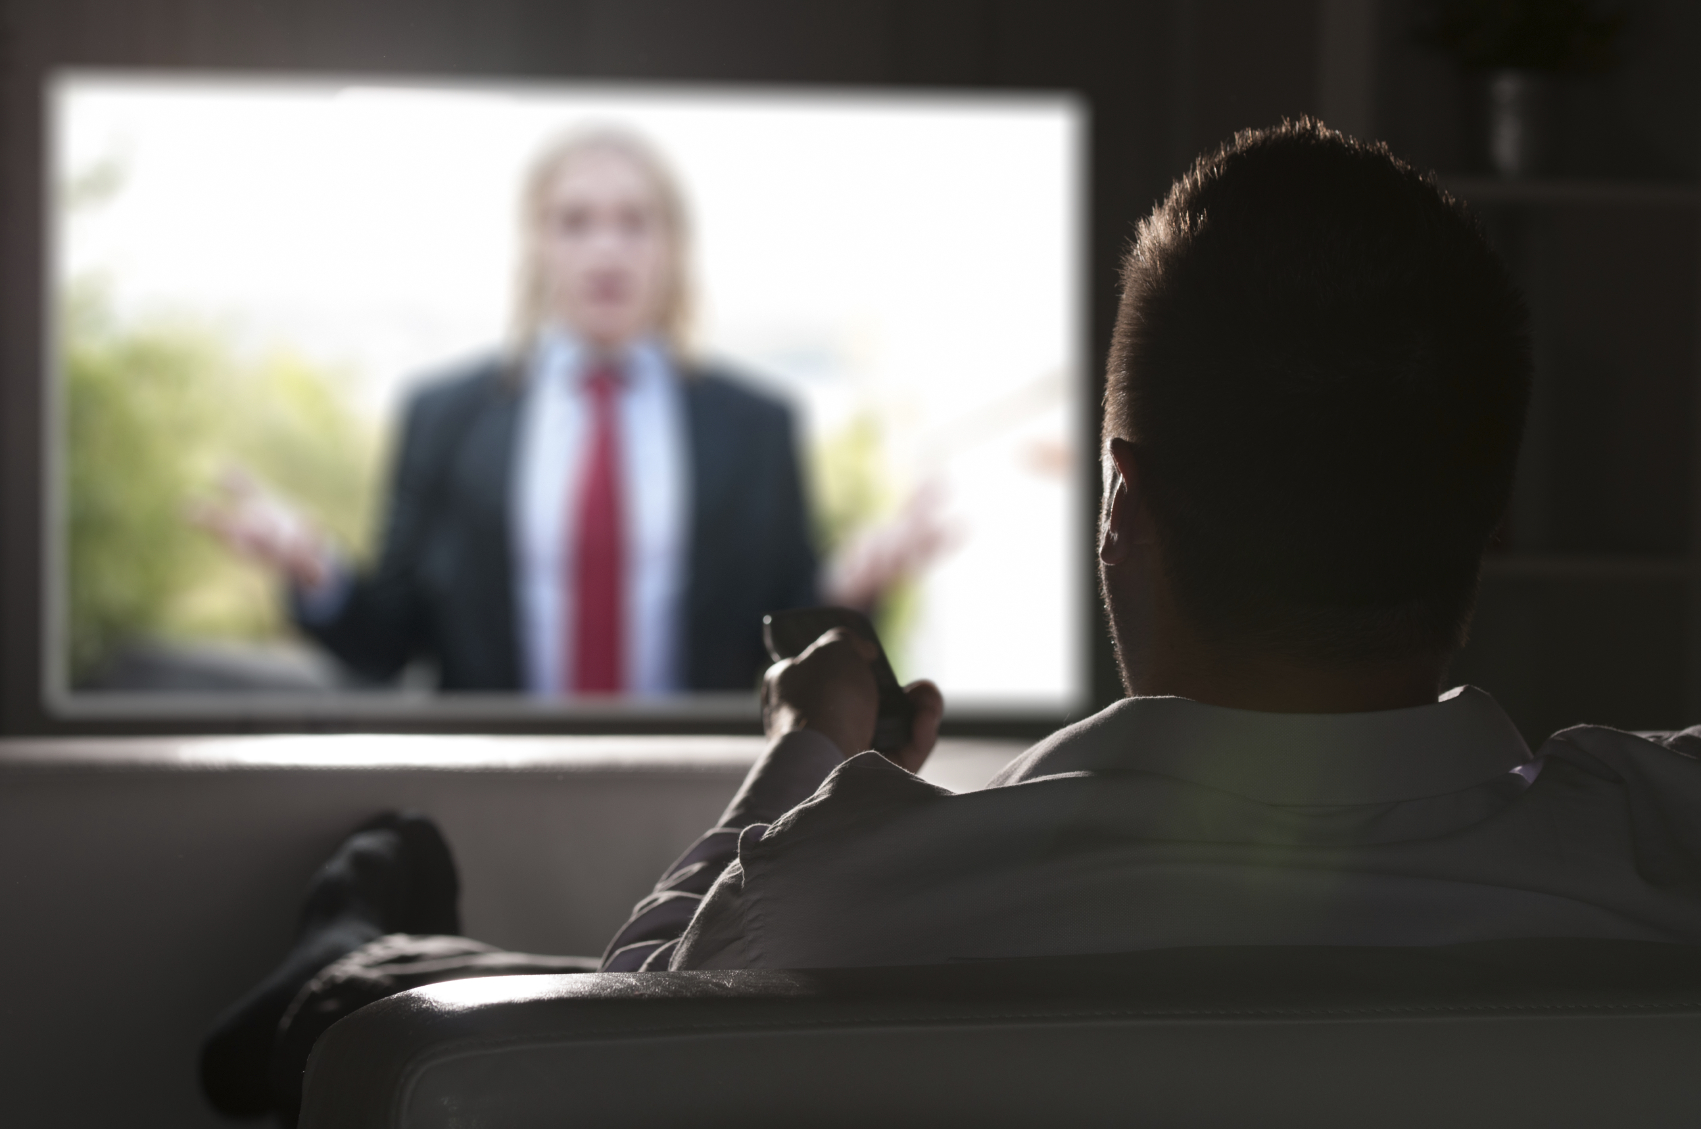 Father watching TV alone at night. (stock image)